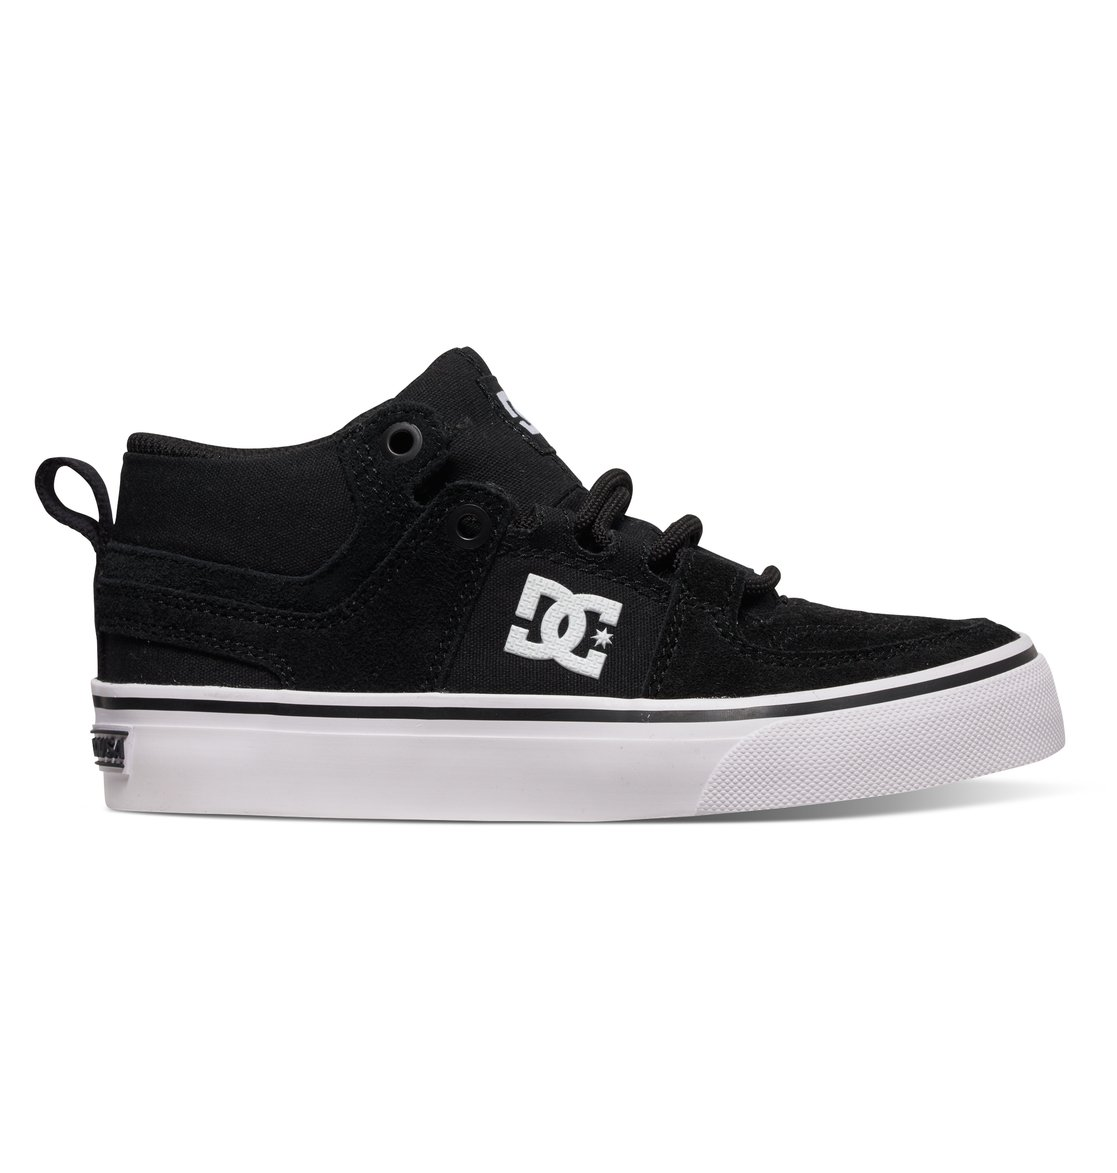 Chaussures de skate DC shoes LYNX VULC SE